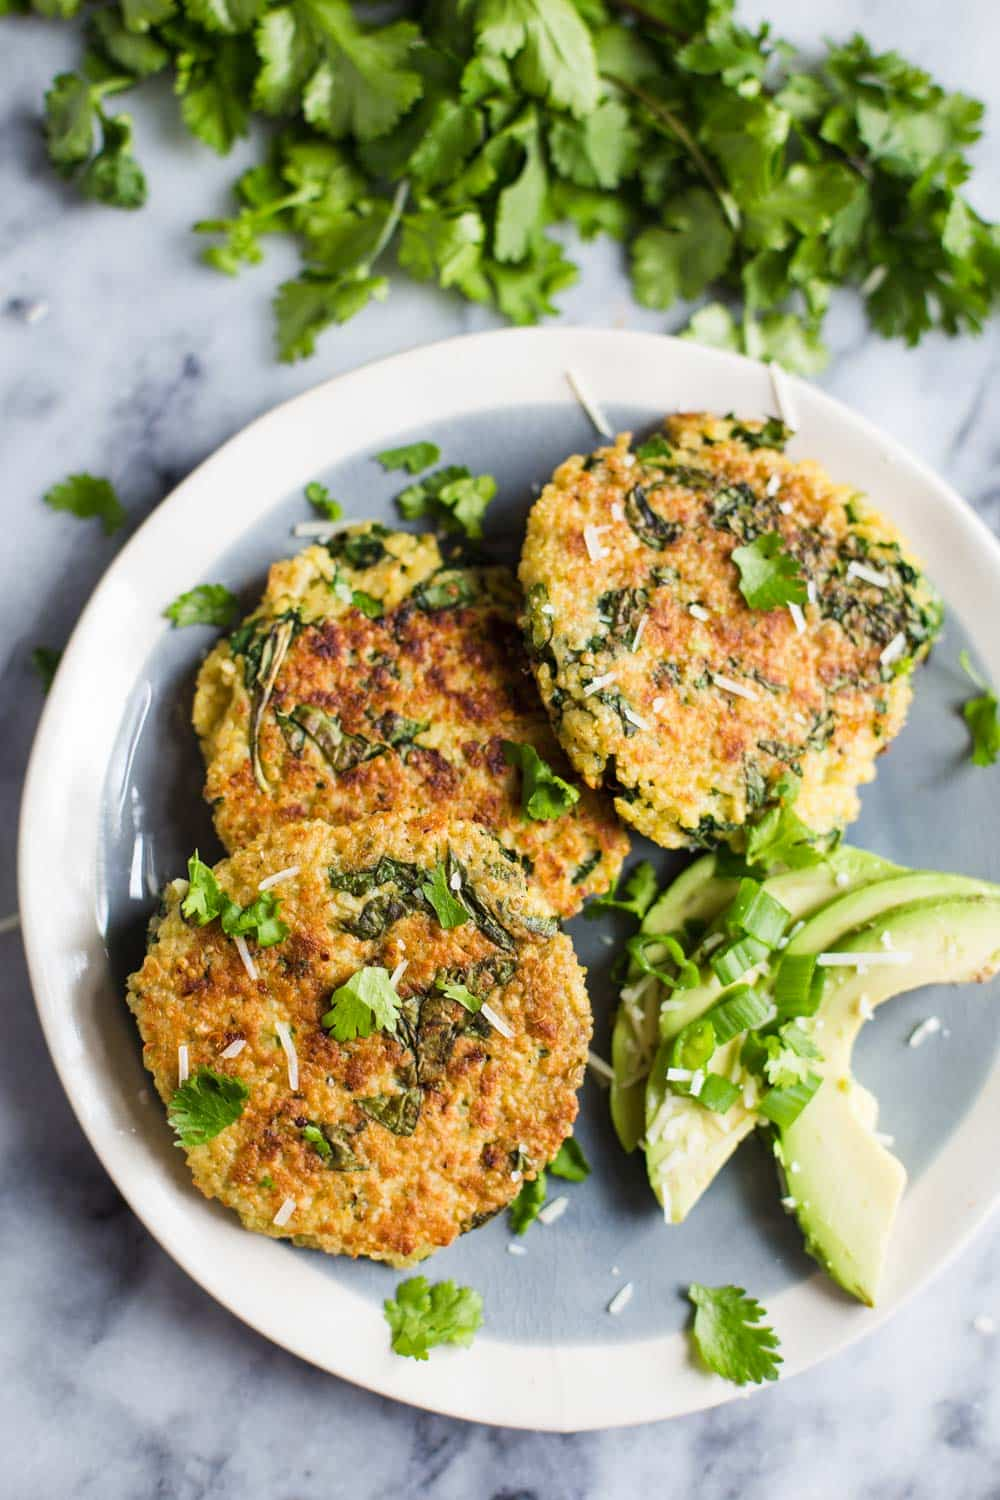 Kale & Quinoa Patties- this recipe is easy to throw together and a nice heathy dinner option to please the whole family!